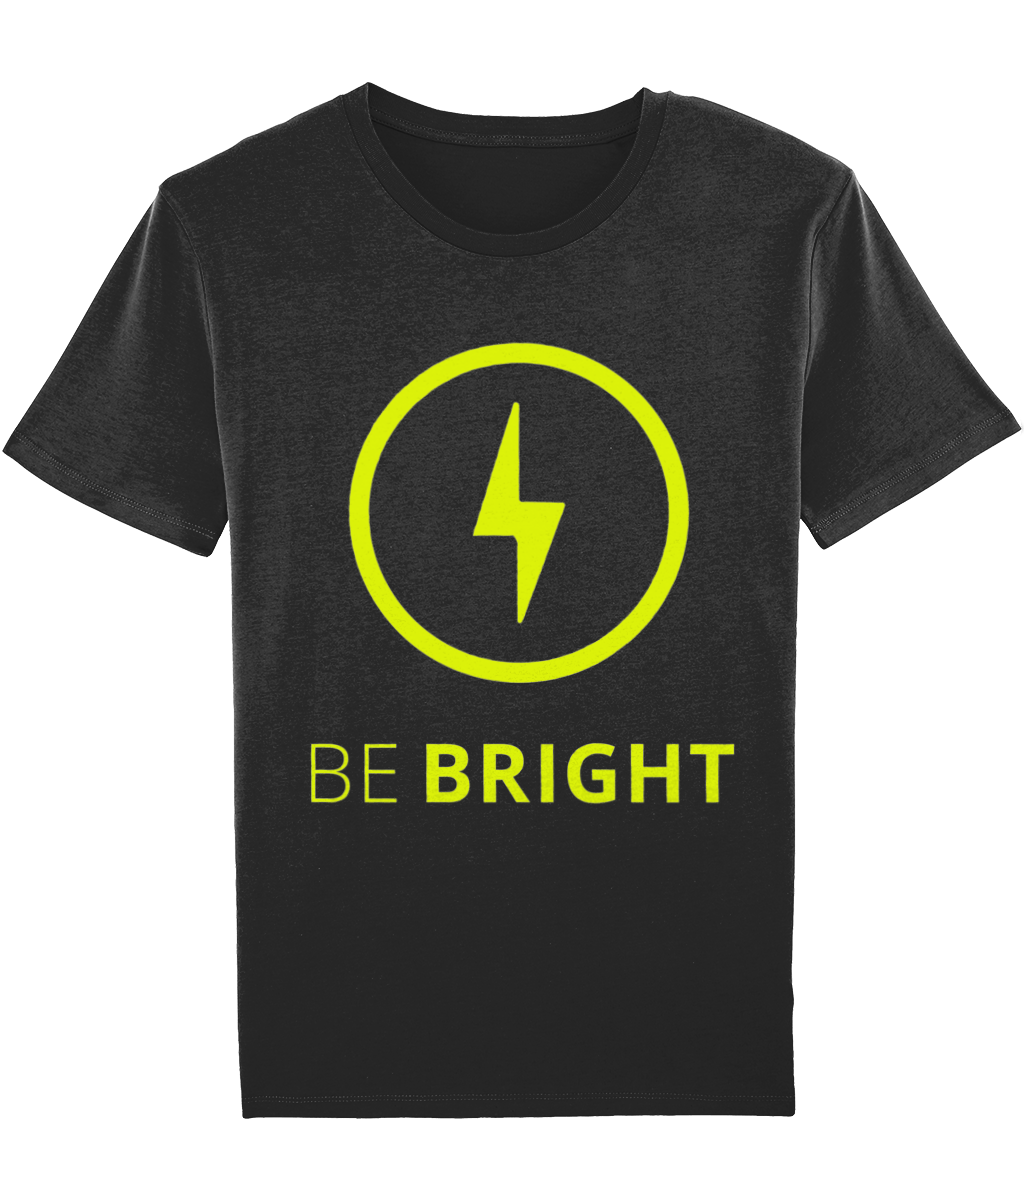 Men's Motivational t-shirt Be Bright